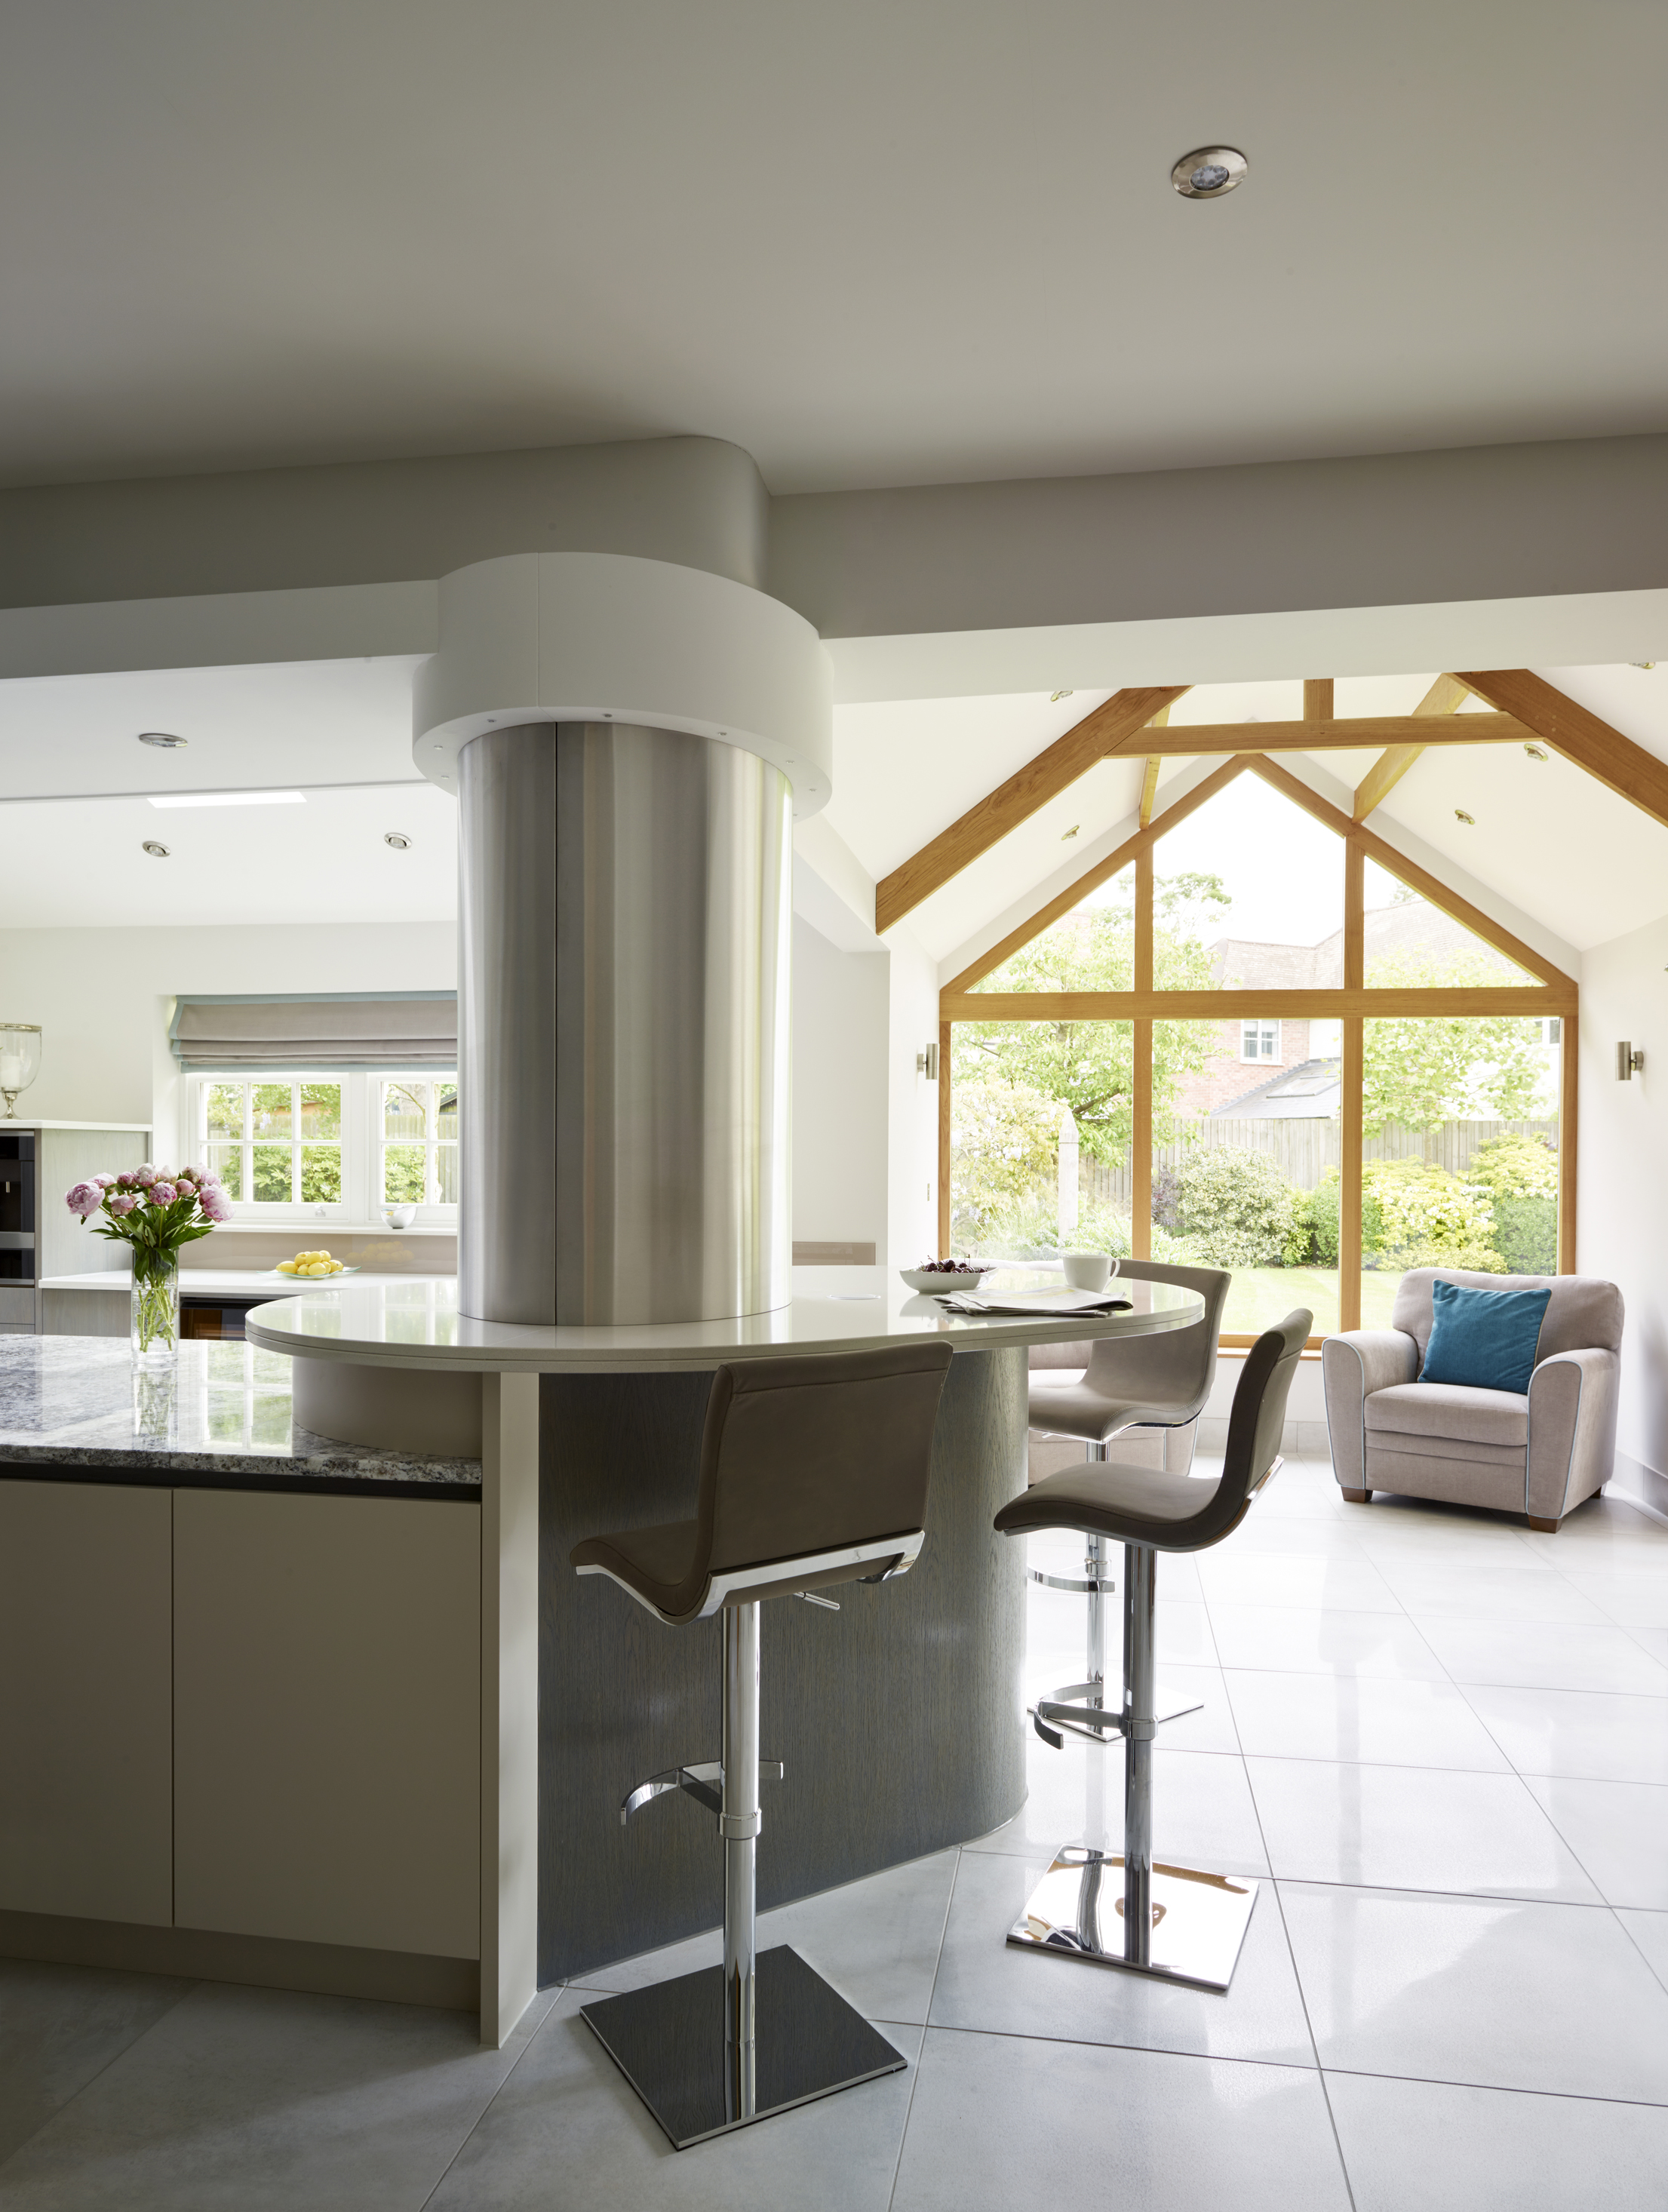 Miele Kitchen Extensions Davonport - Island